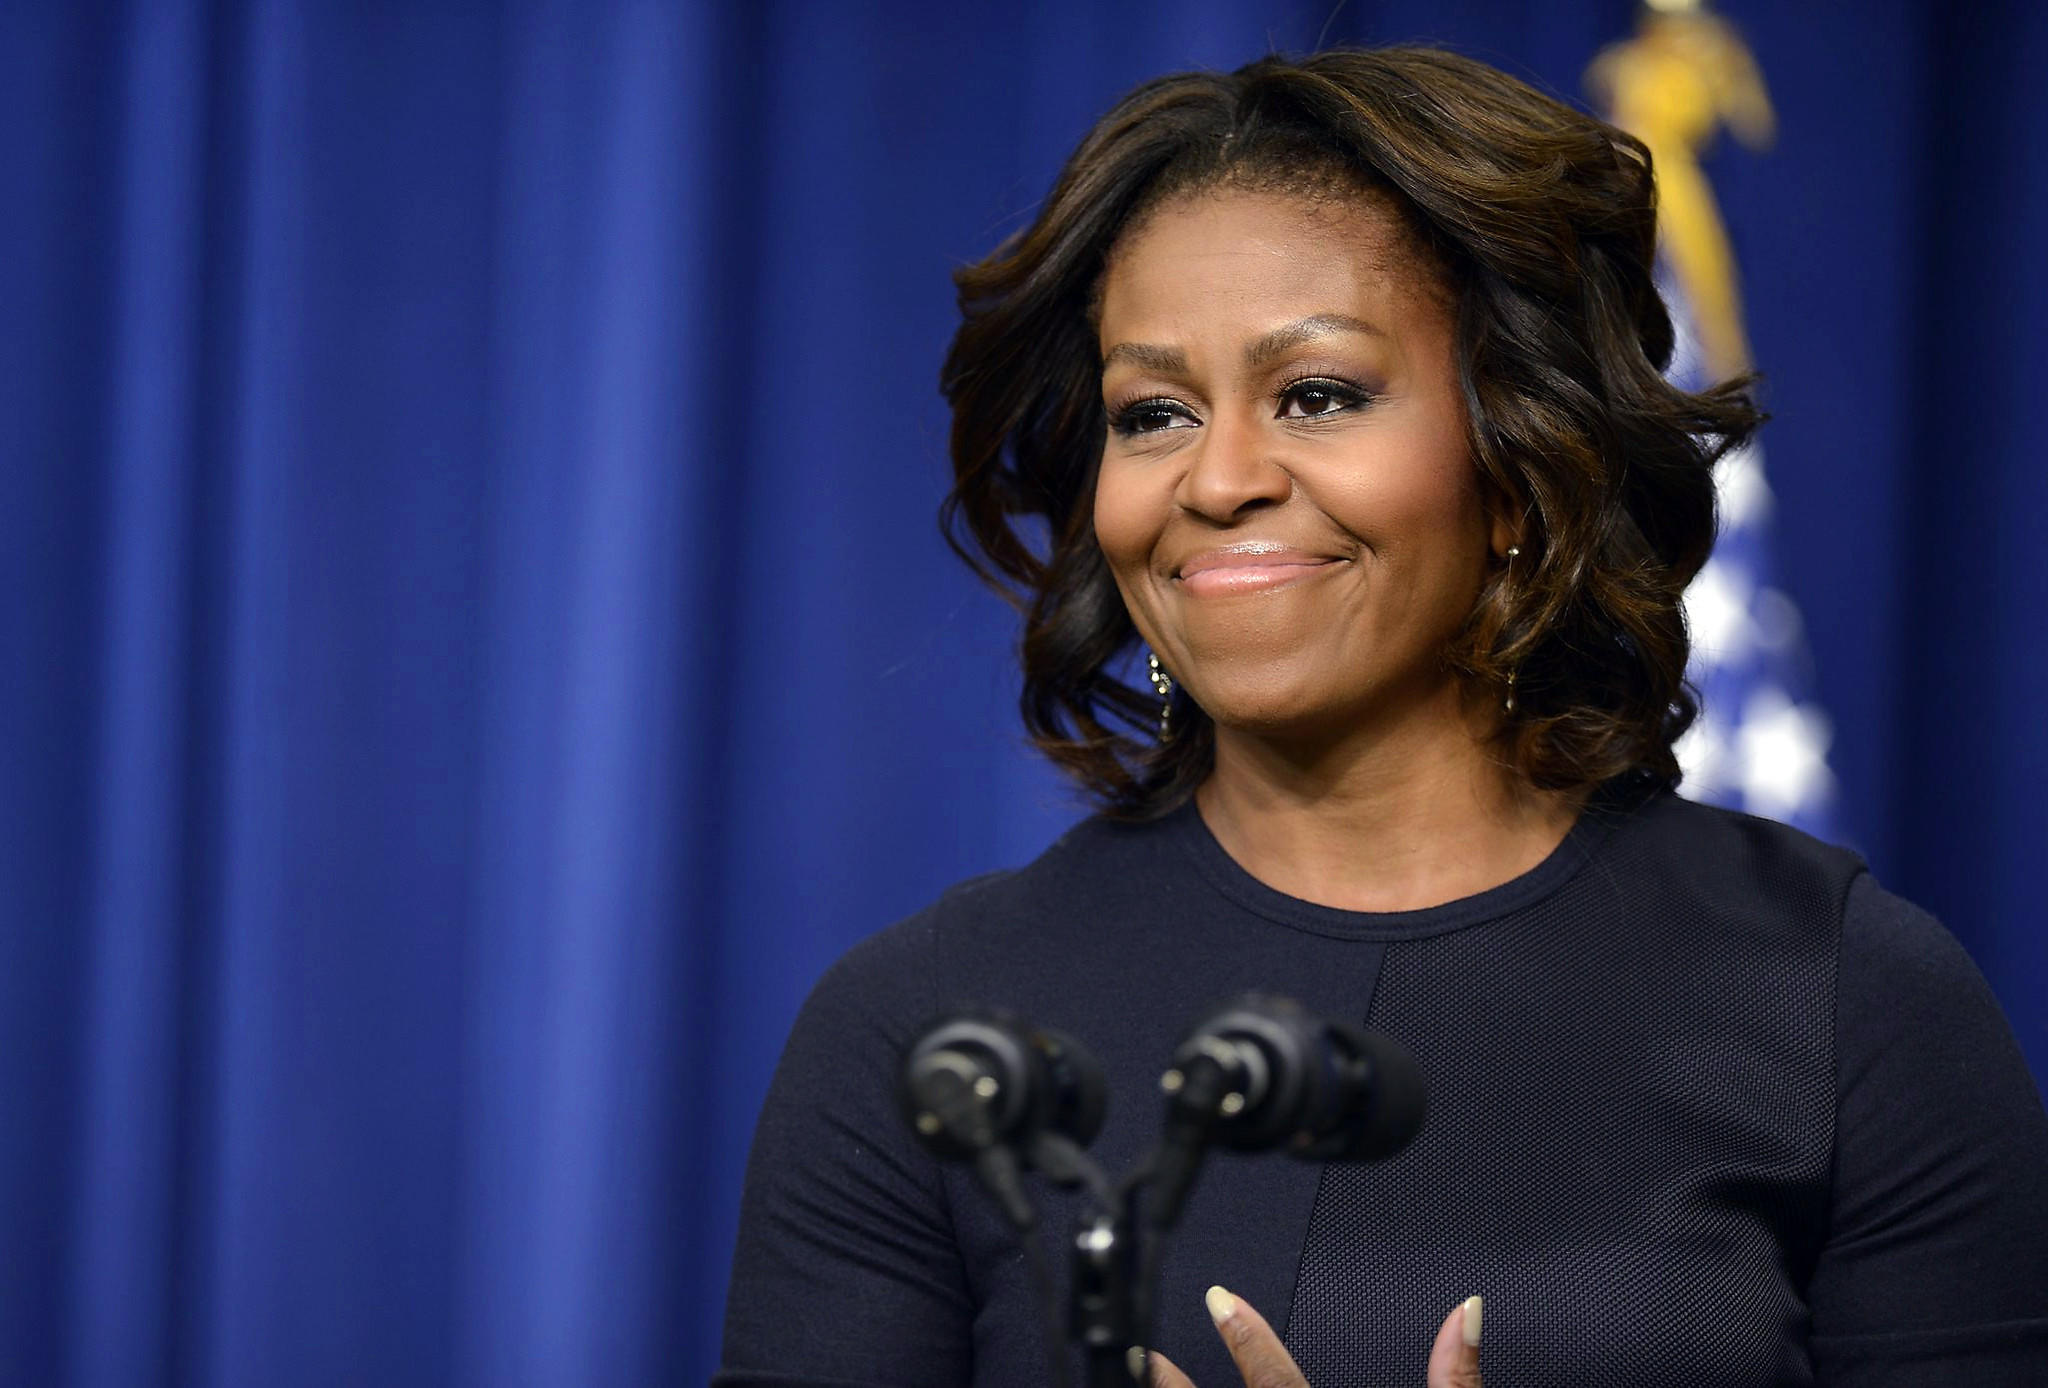 Michelle Obama speaks at an event in Washington, D.C.